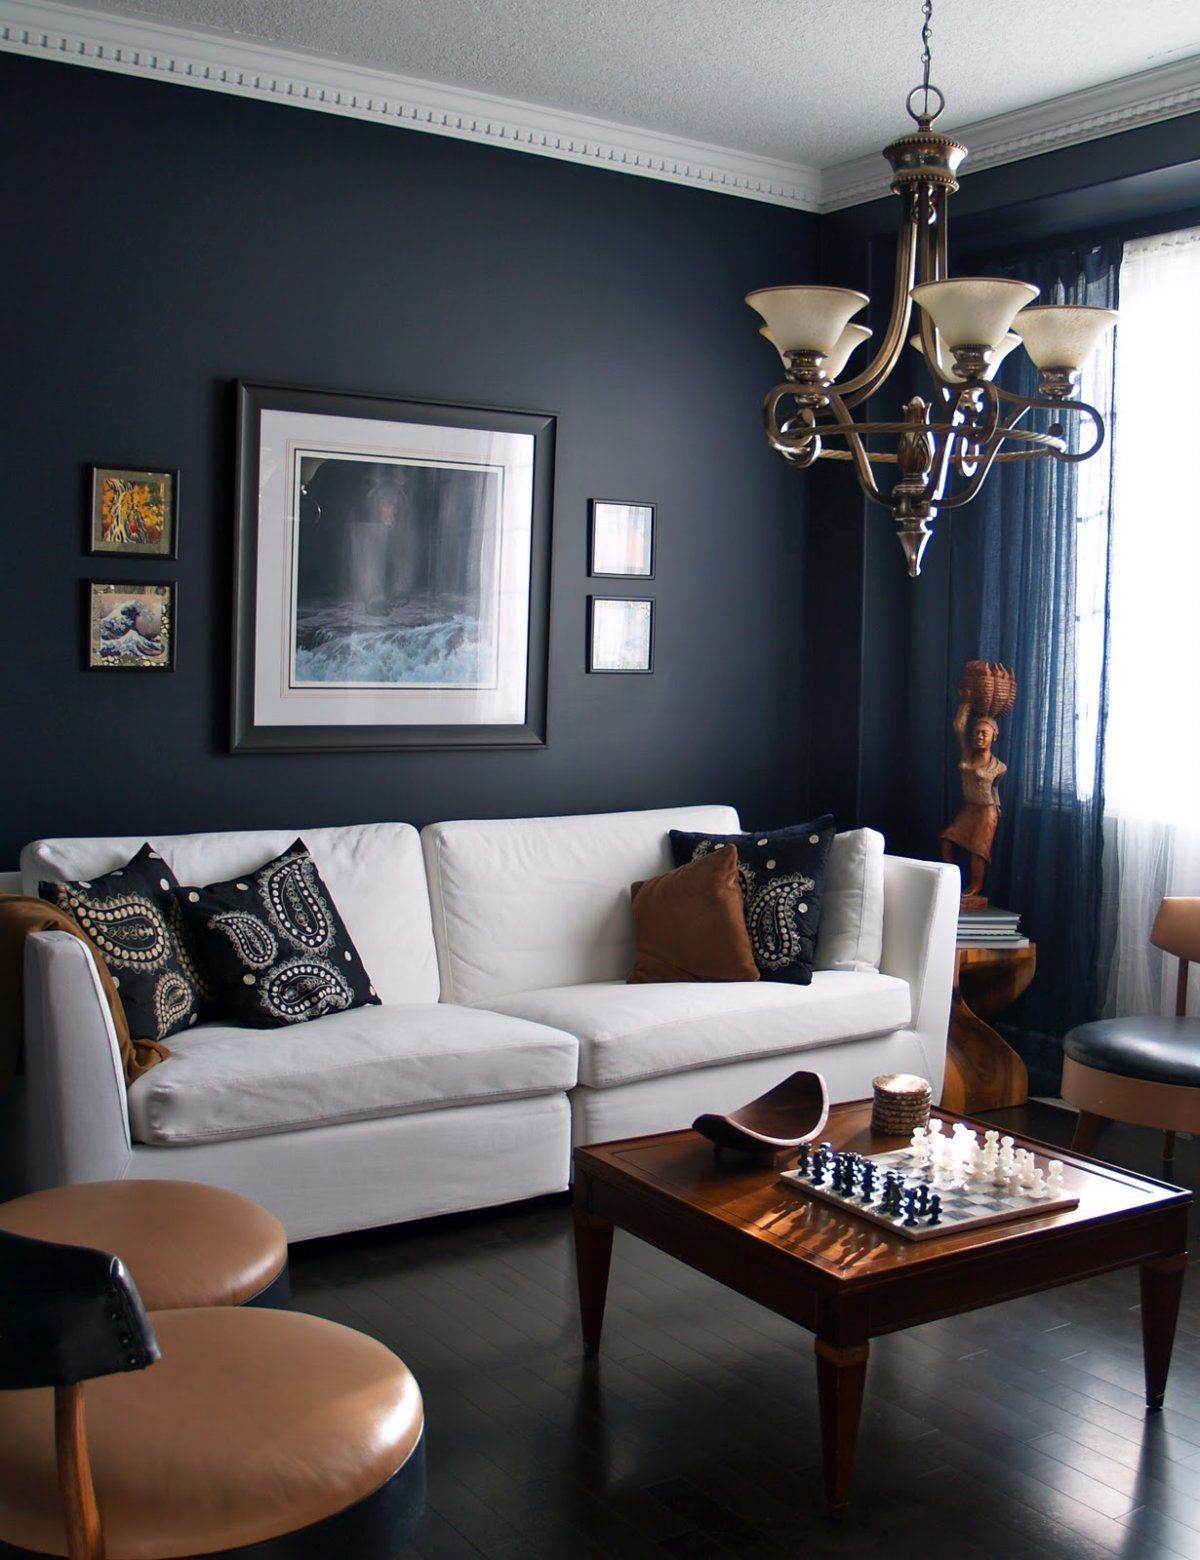 Living Rooms With Dark Navy Blue Walls With White Sofa And Classic Chandelier Living Room Color Black Living Room Brown Living Room